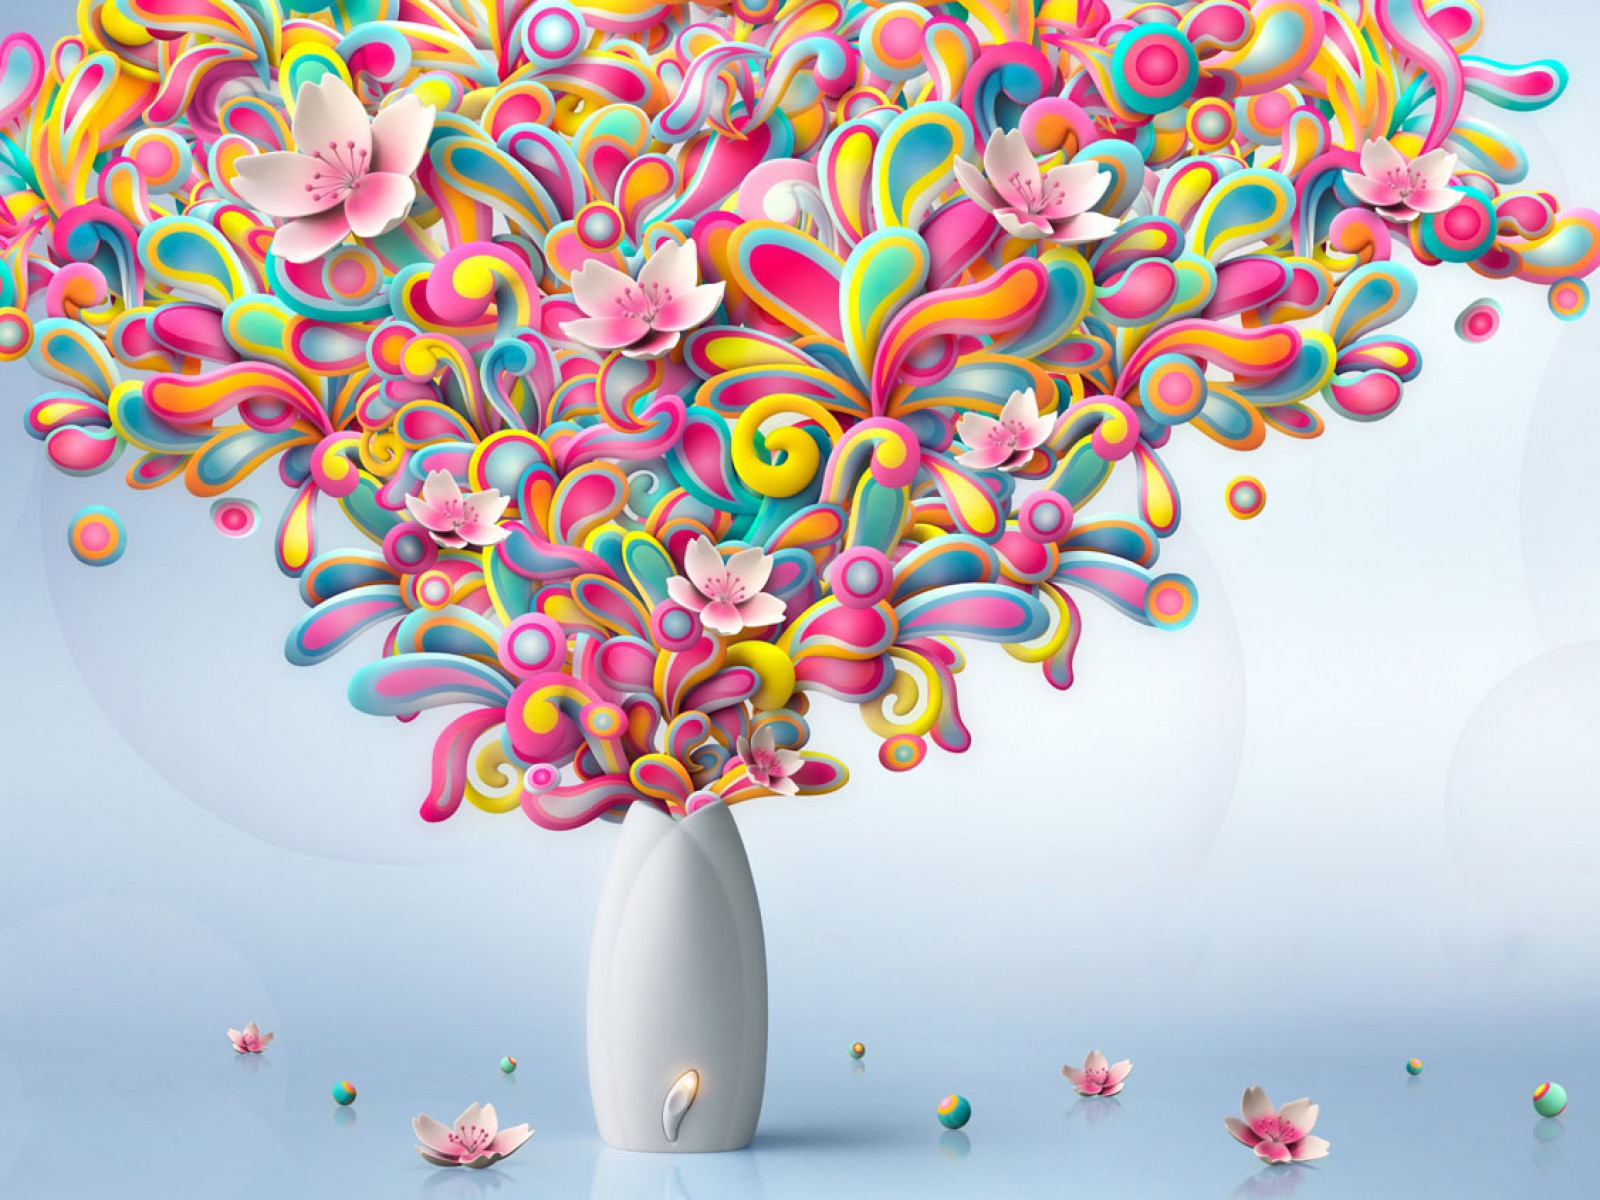 Free Colorful Flower Wallpaper Downloads: Colorful Flowers Explosion Wallpapers